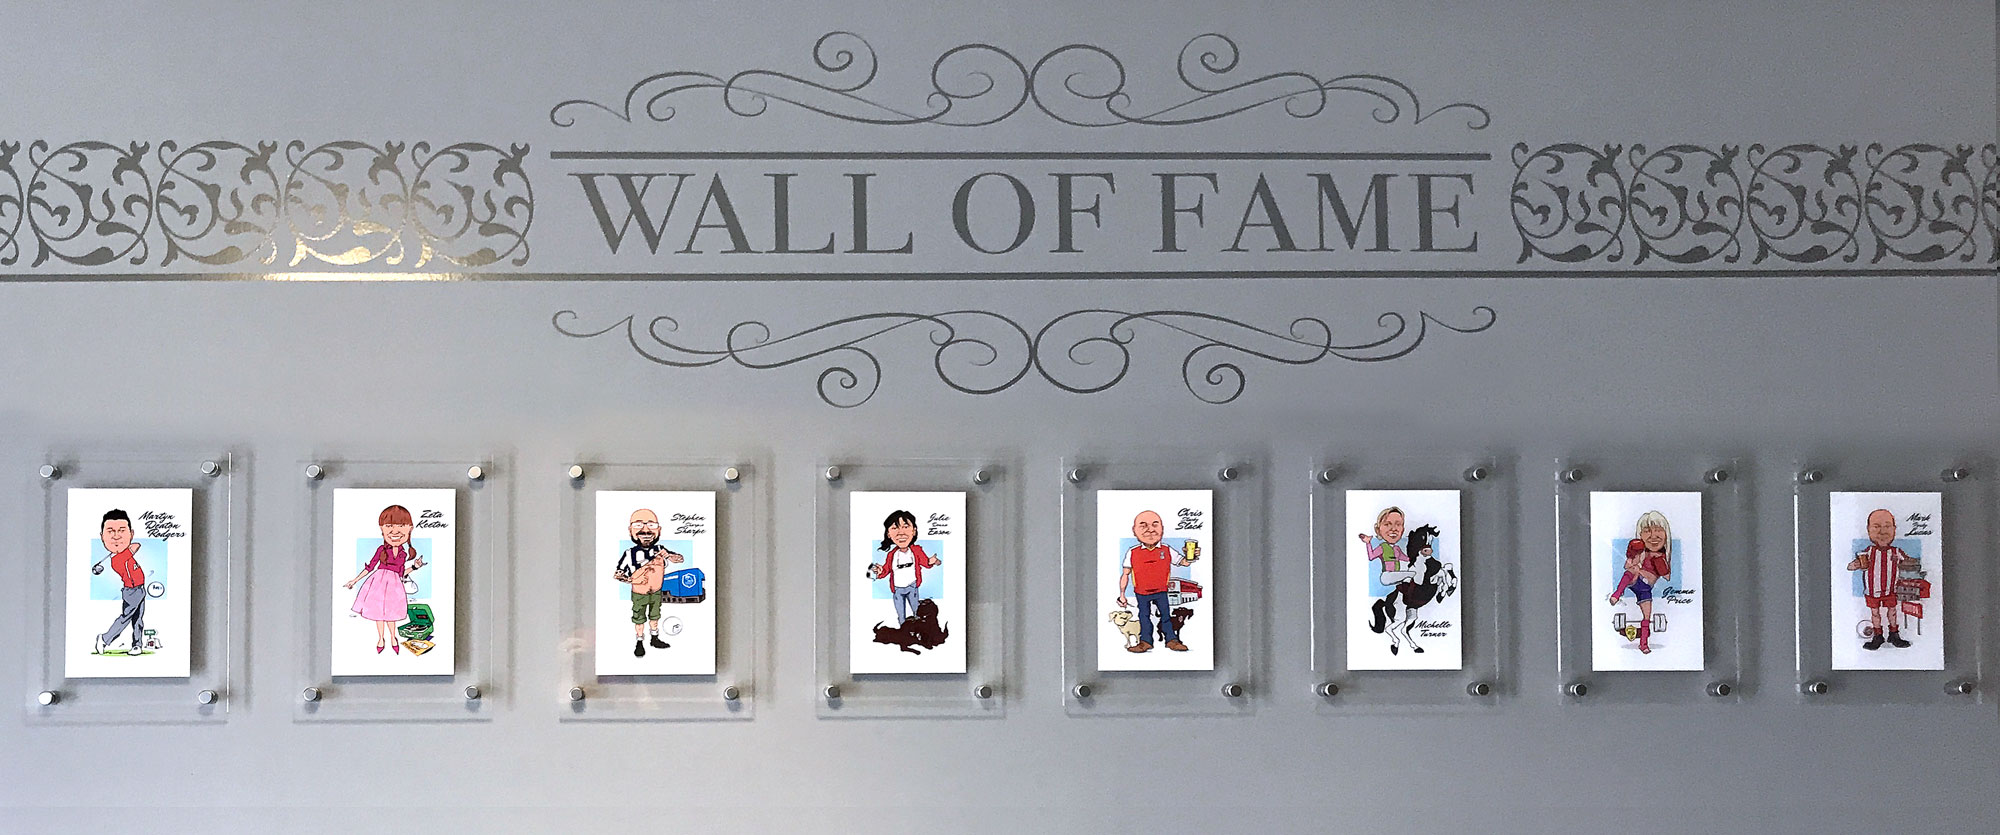 NES Wall of fame